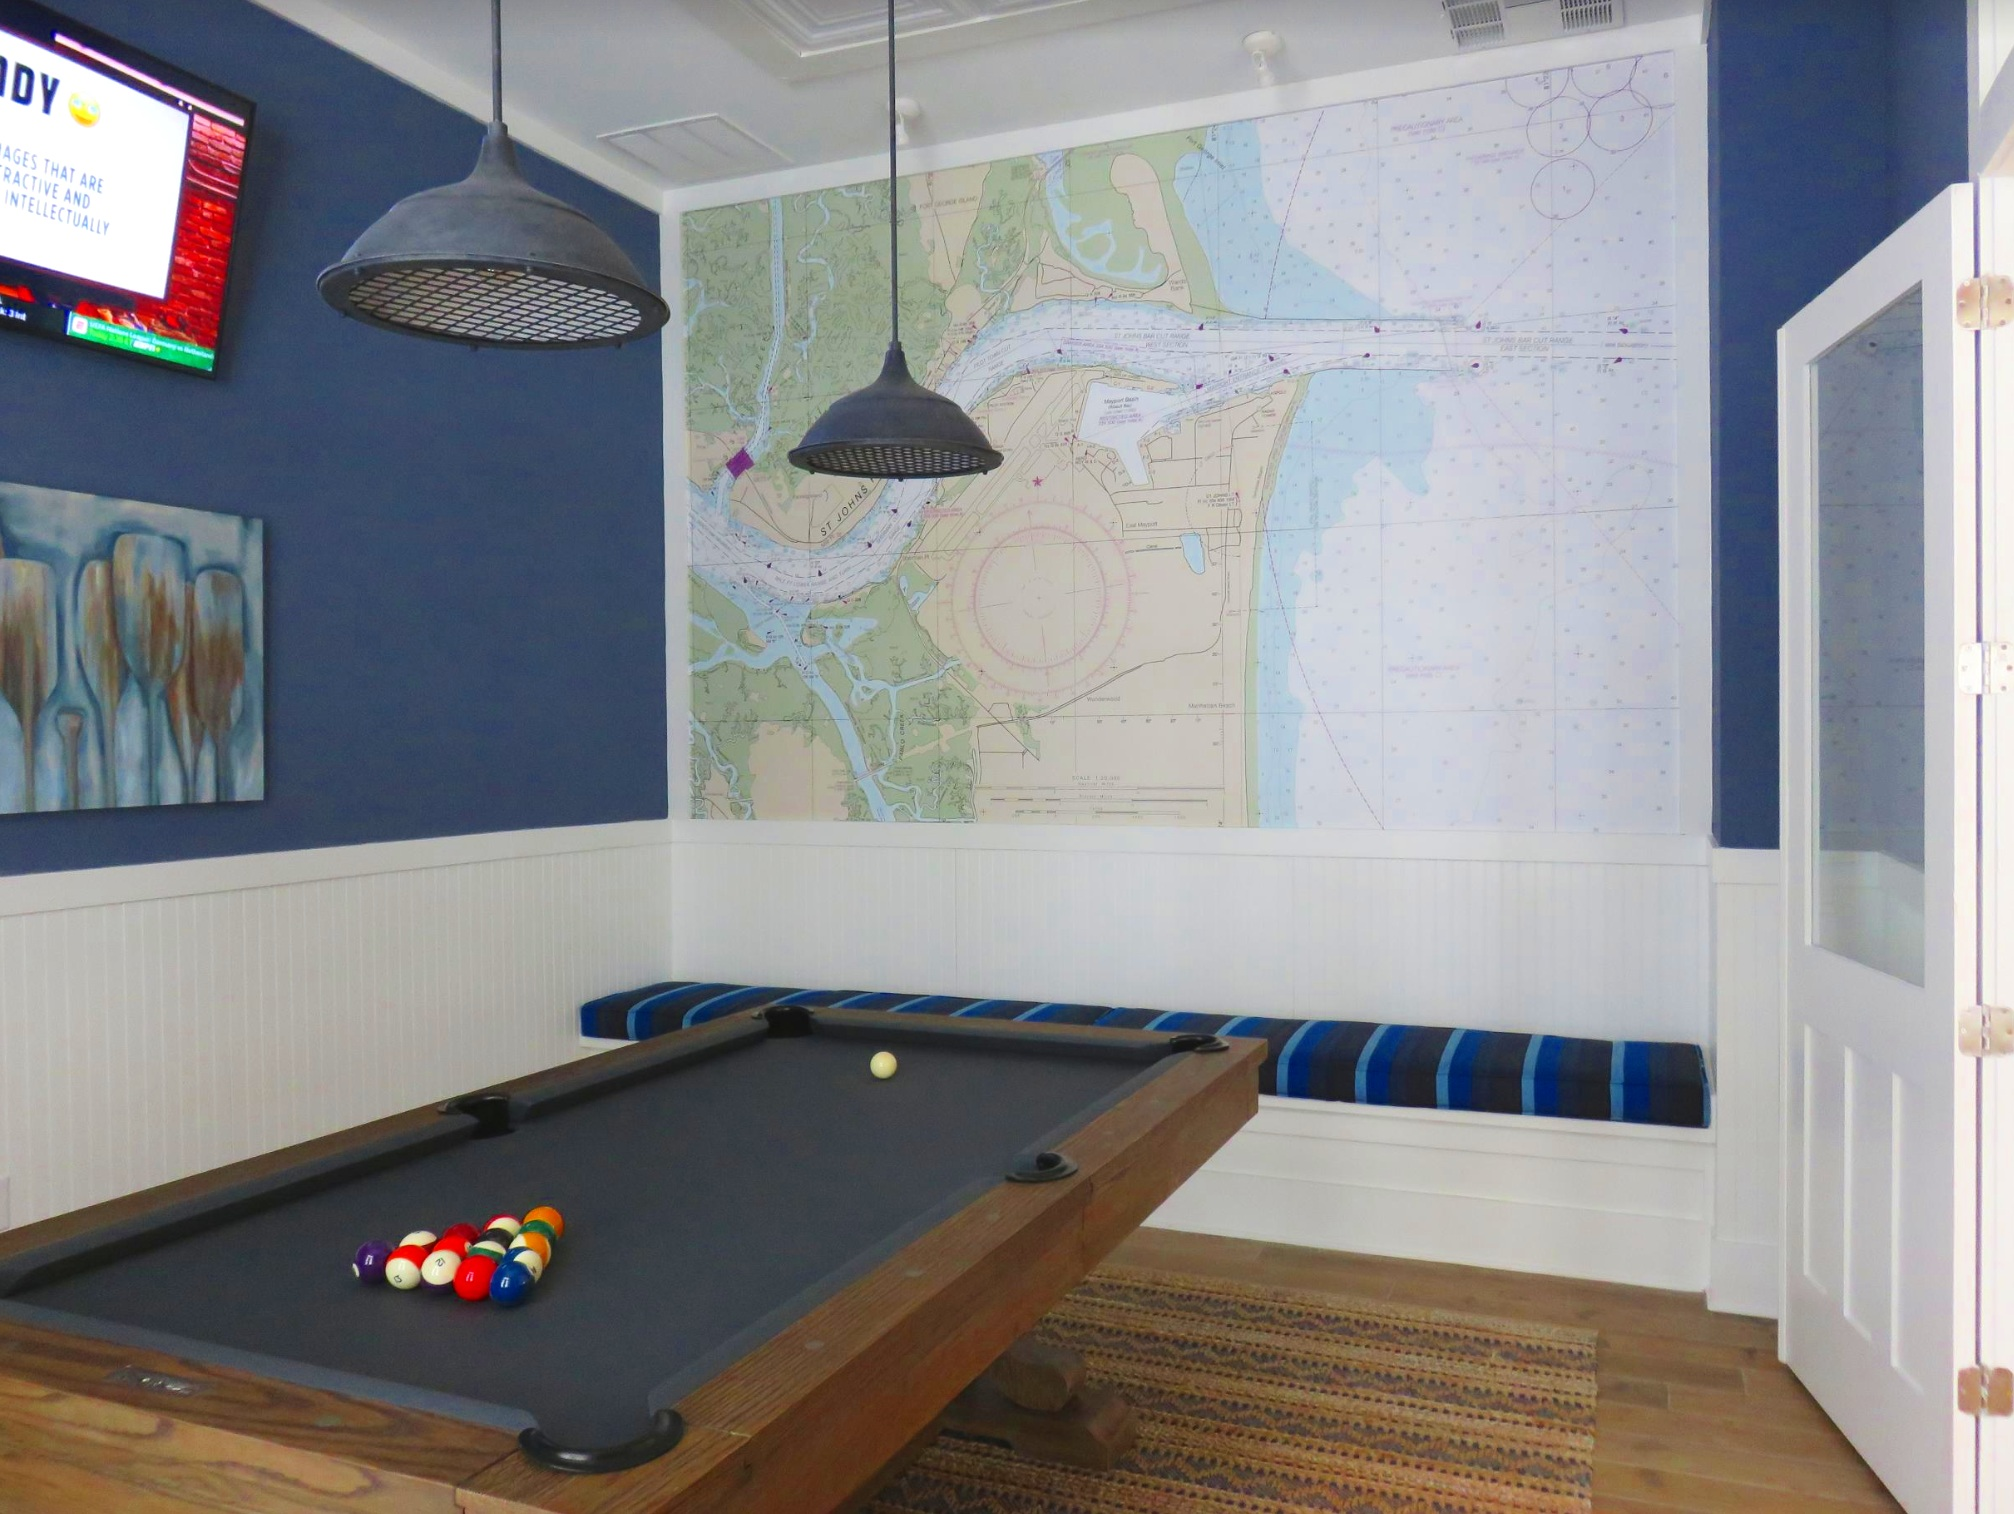 This clubhouse room was a project by interior designer Lori Avampato iof Group 4 Design, Inc. (    www.g4designinc.com    ) who worked with us to capture the key features of the St. Johns River.